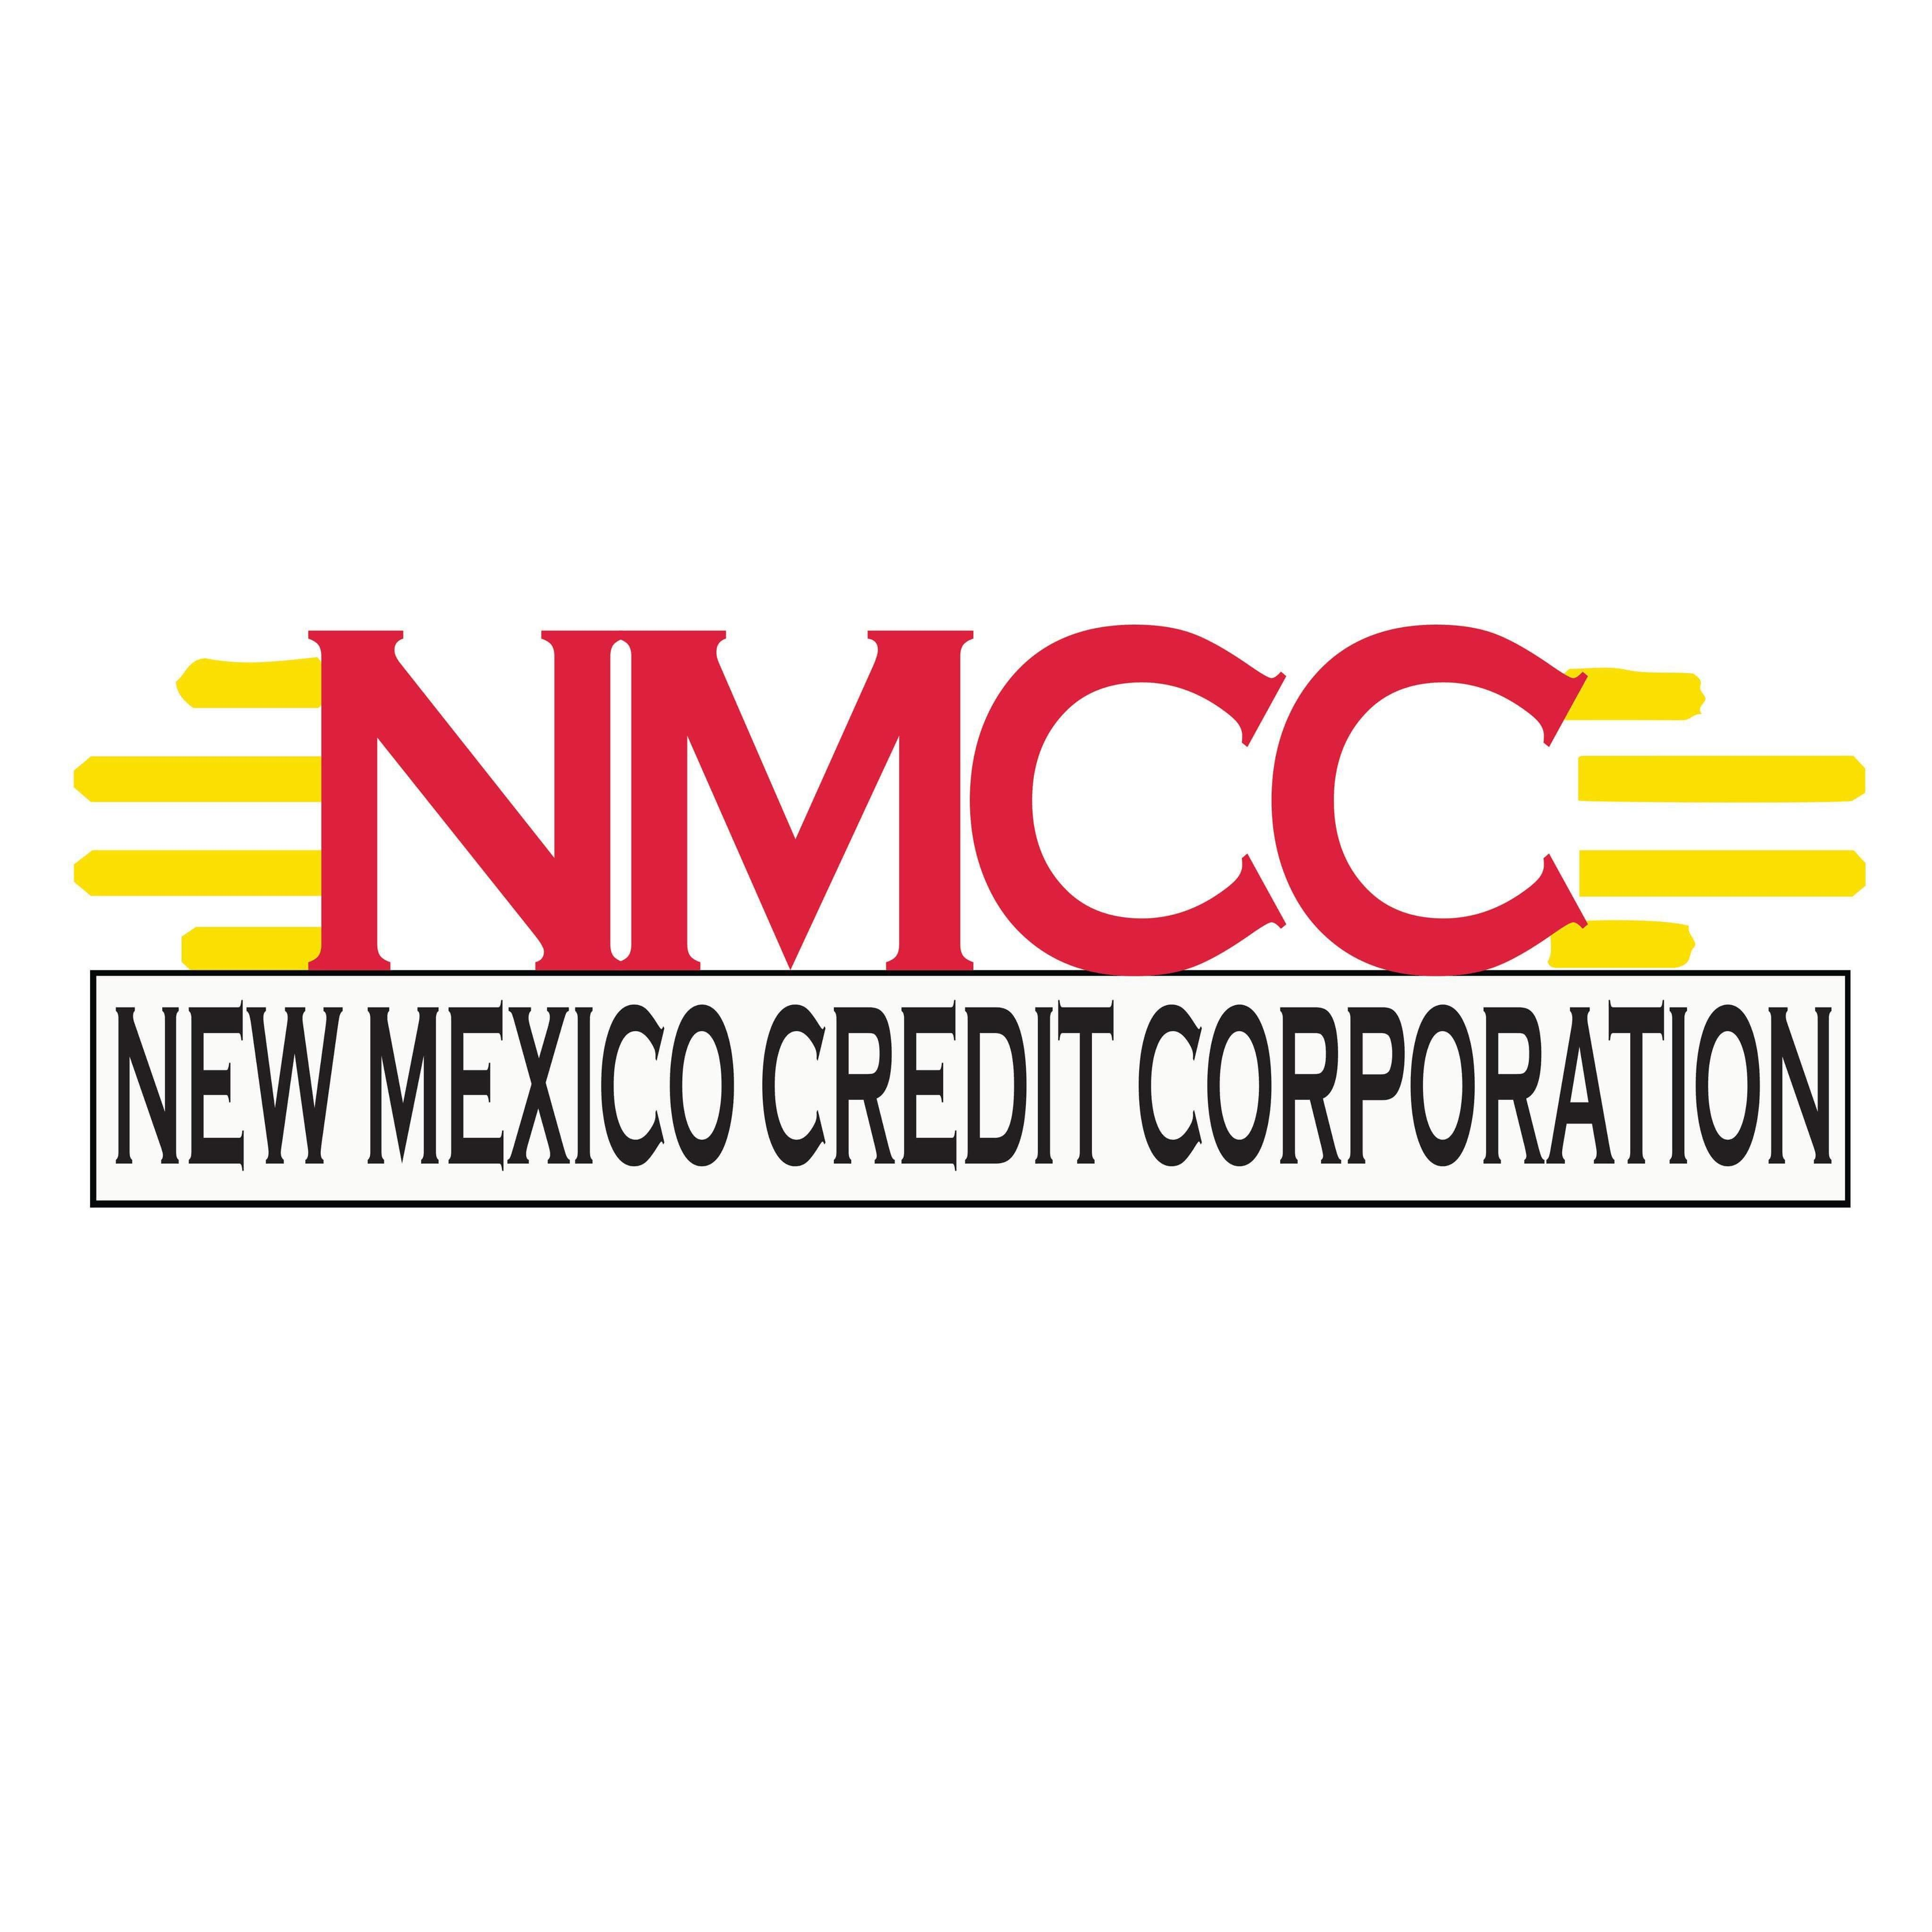 New Mexico Credit Corporation image 3